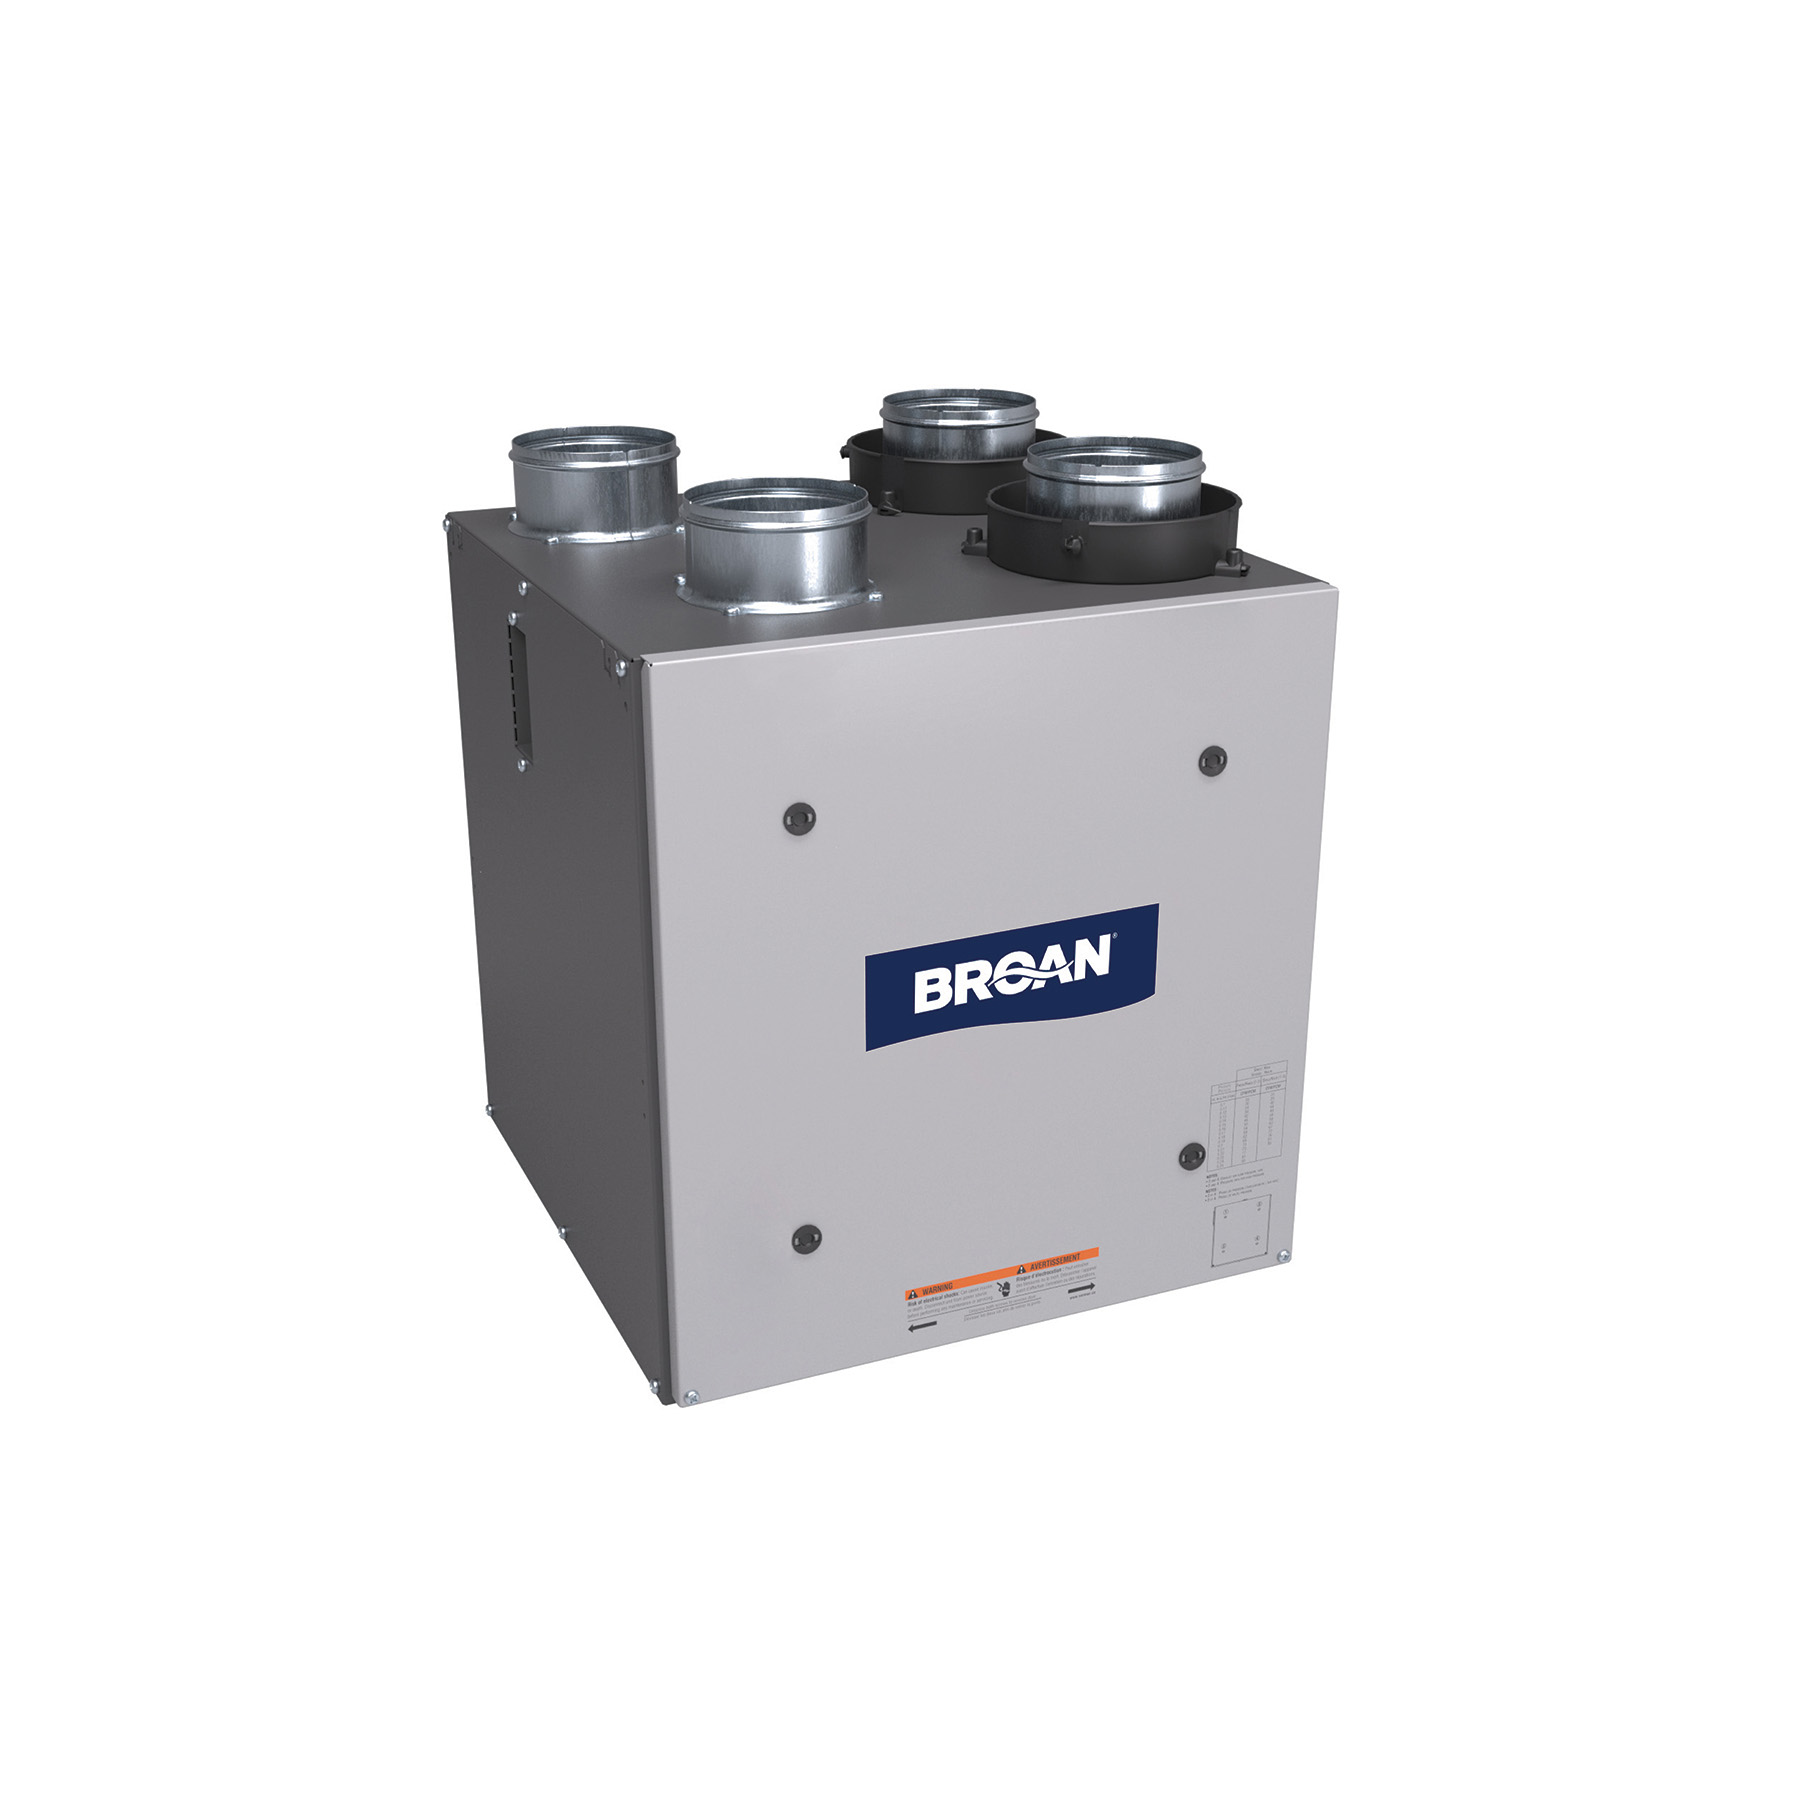 Broan® Compact Flex Series™ Energy Recovery Ventilator, 70 CFM at 0.4 in. w.g.